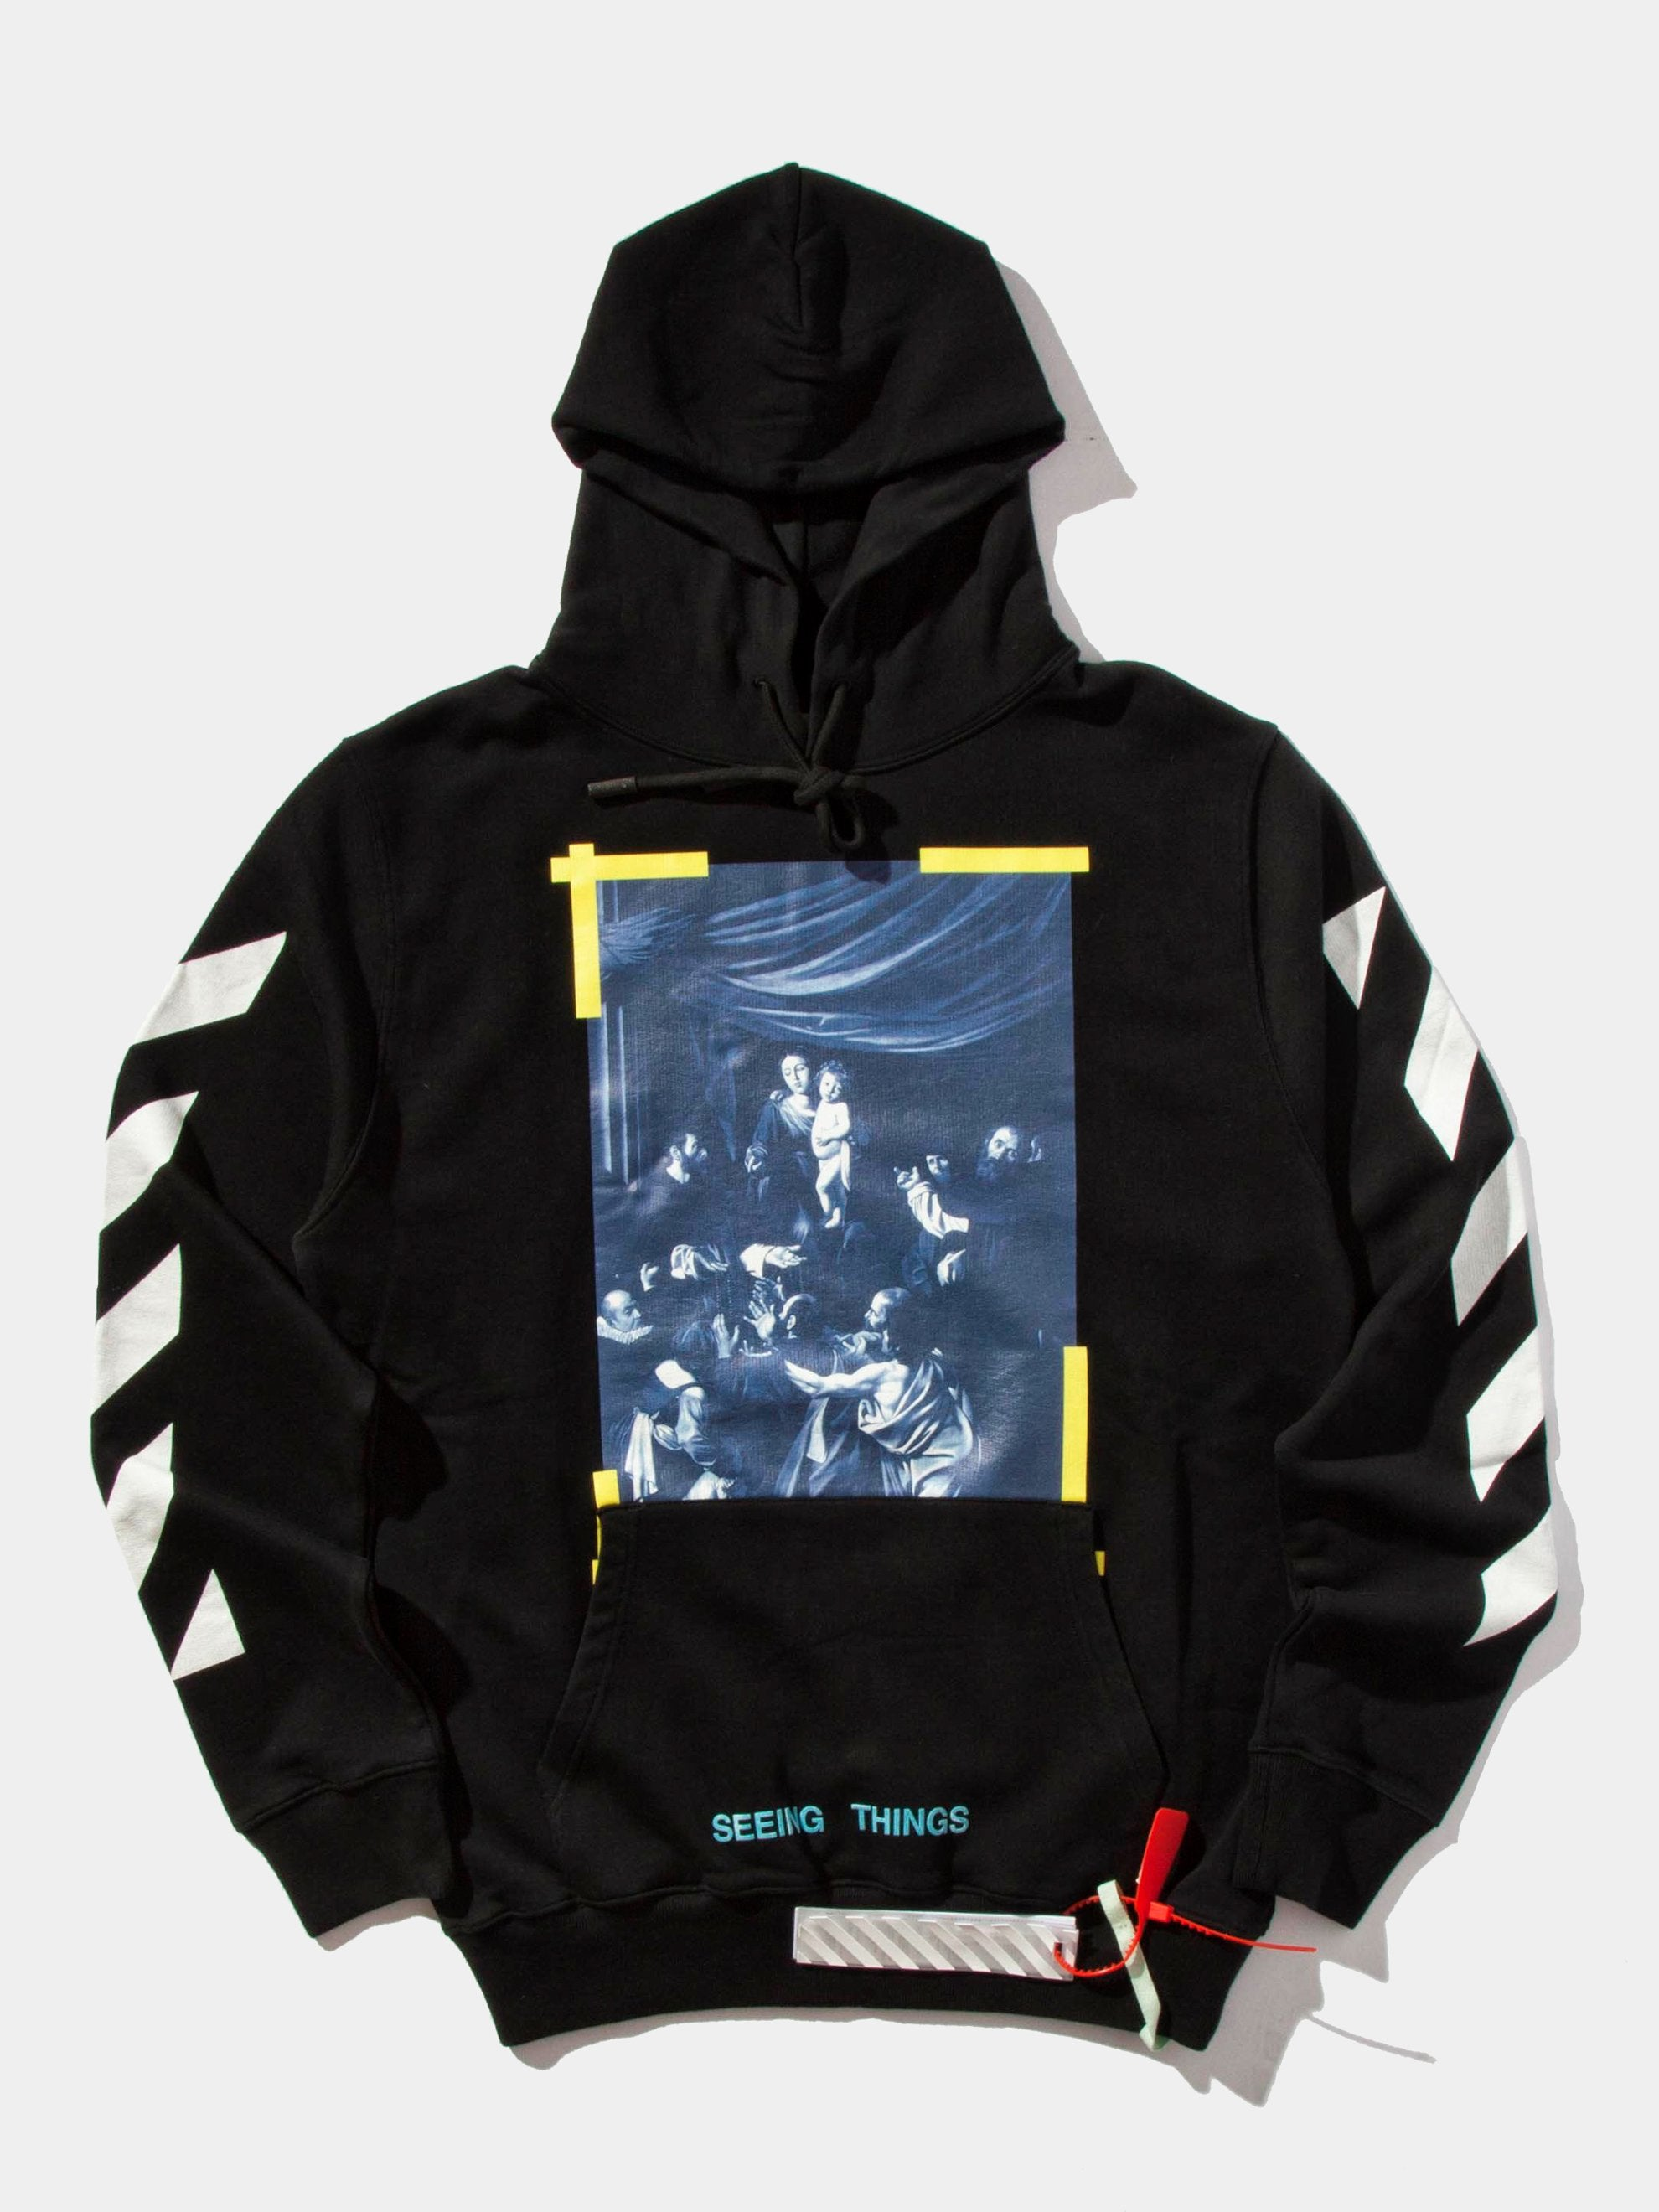 Black Diagonal Caravaggio Hooded Sweatshirt 1